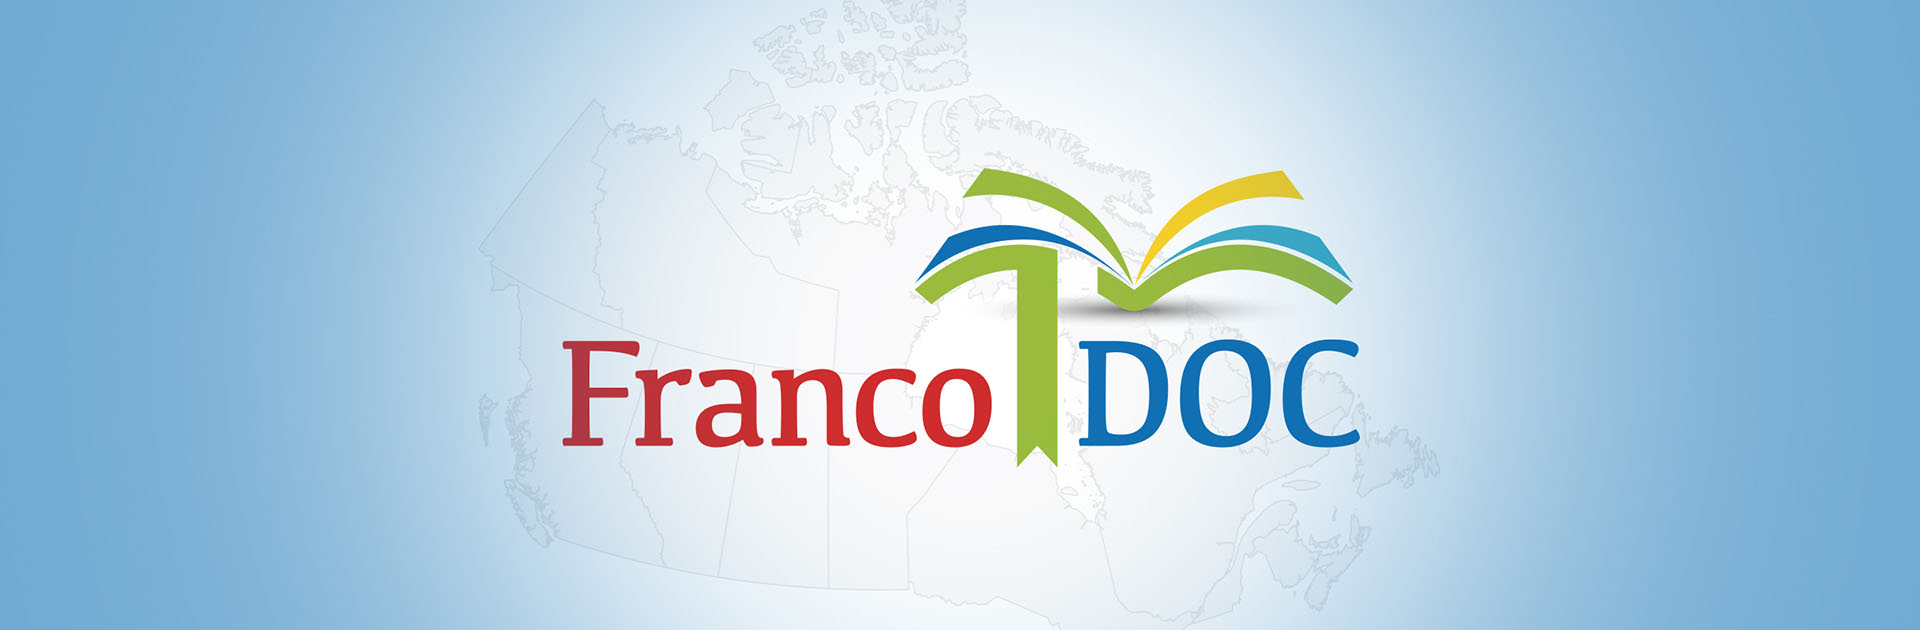 map of Canada with FrancoDoc logo on top